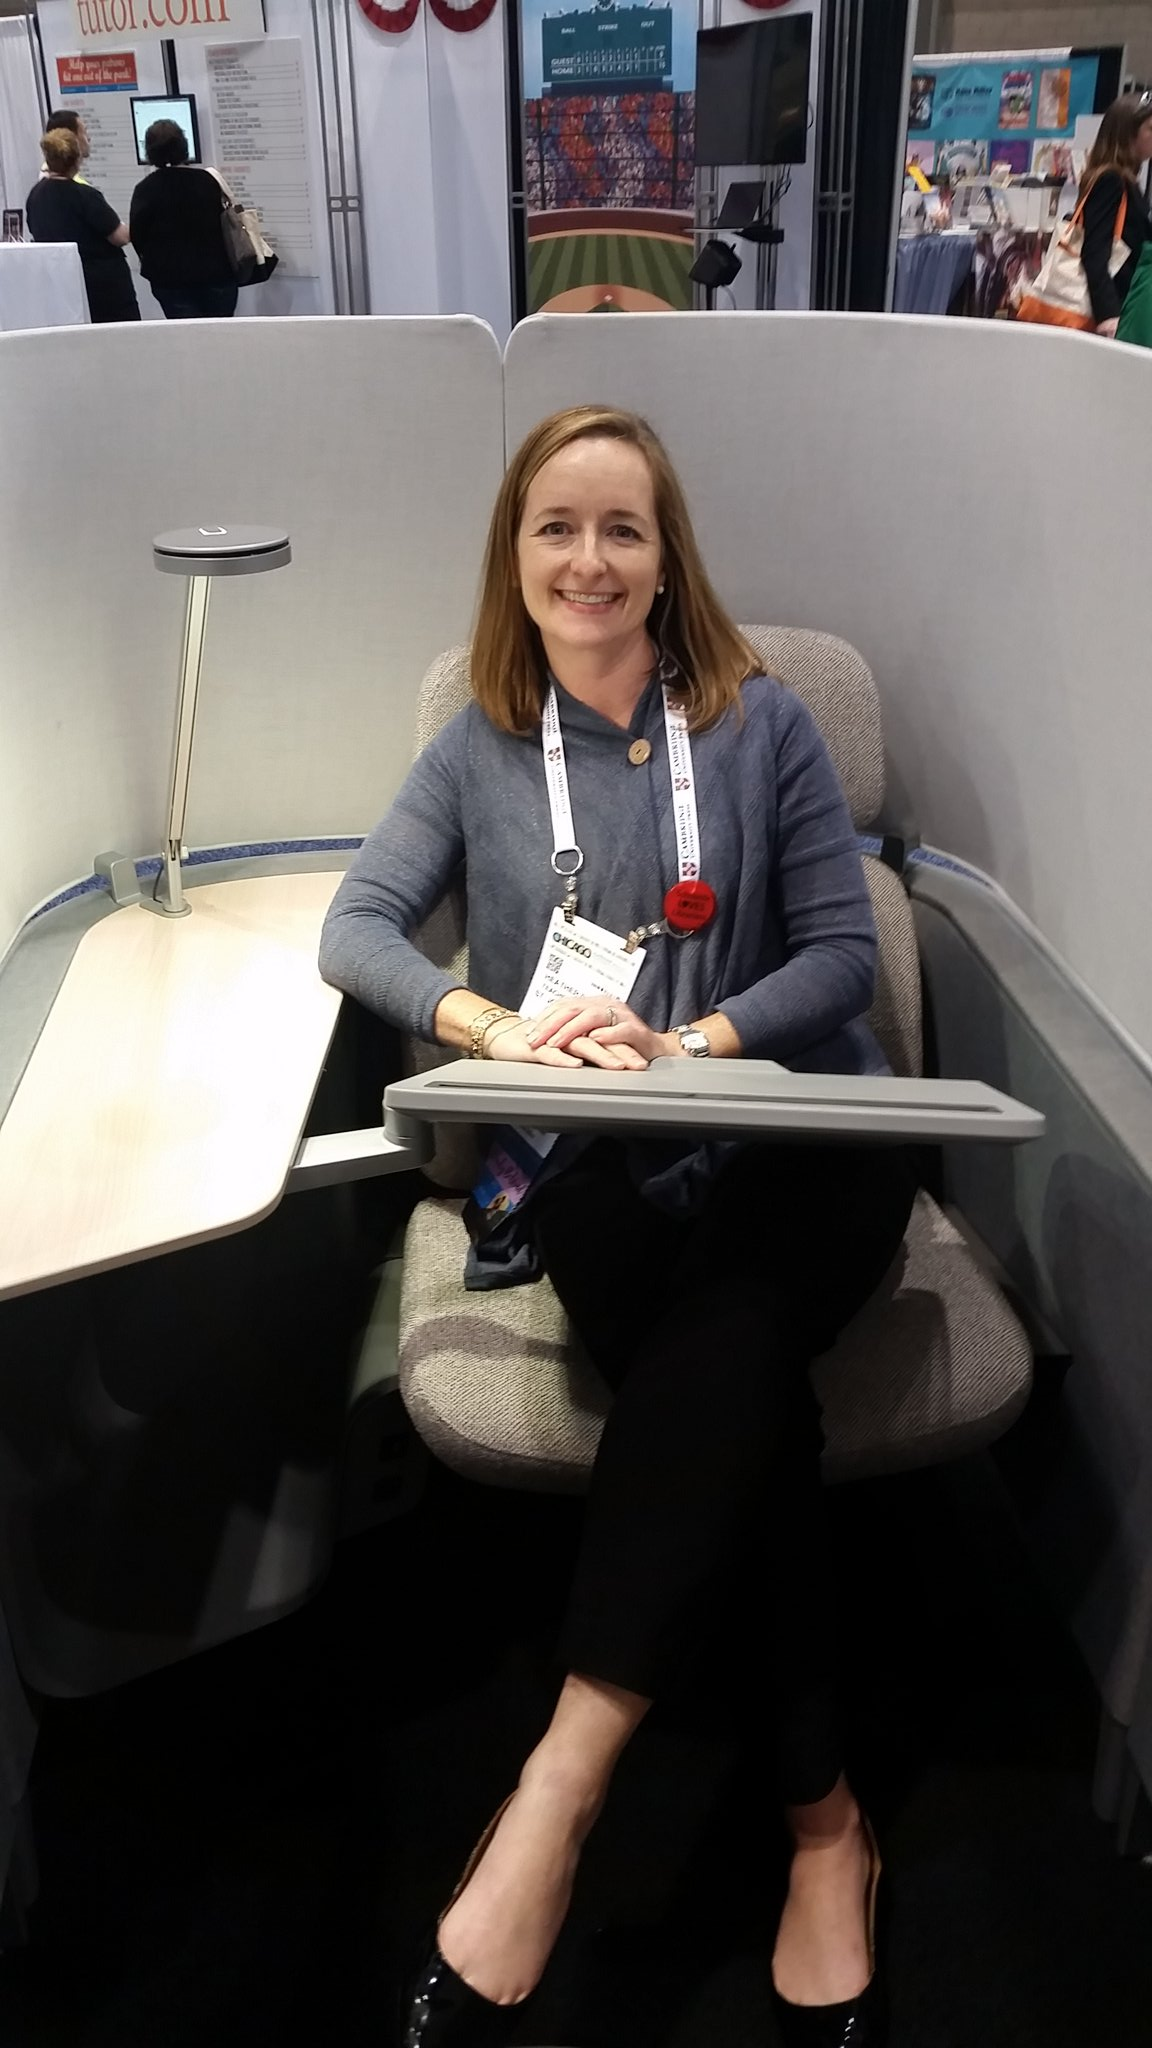 lazytribrarian  @ZuskasMama Make sure you try this out at #ISTE17 @SteelcaseEDU #alaac17 https://t.co/rz7UTEryXM  6/25/17, 3:27 PM